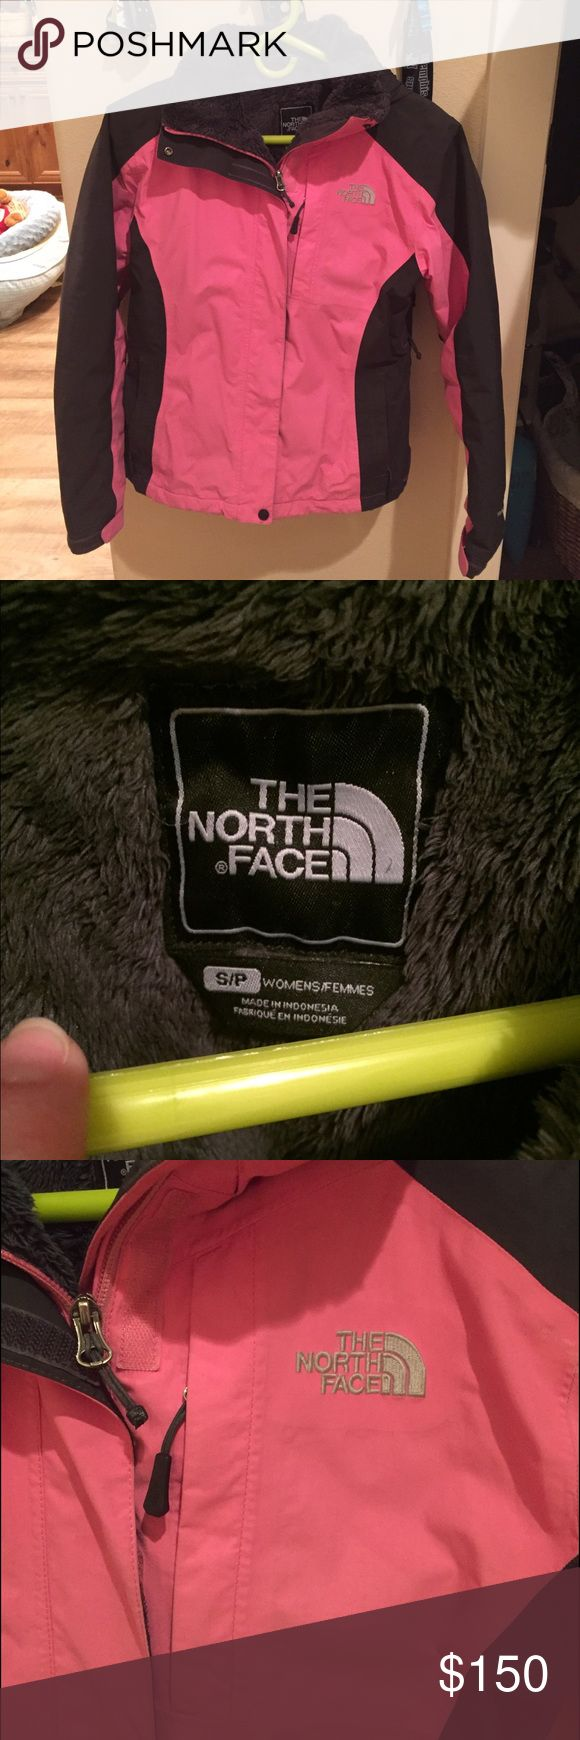 North Face Ladies Jacket Size S This jacket is is Great Condition. Ive had it for a few years now and just don't use it. If you have any questions or if you would like additional pictures please let me know. The North Face Jackets & Coats